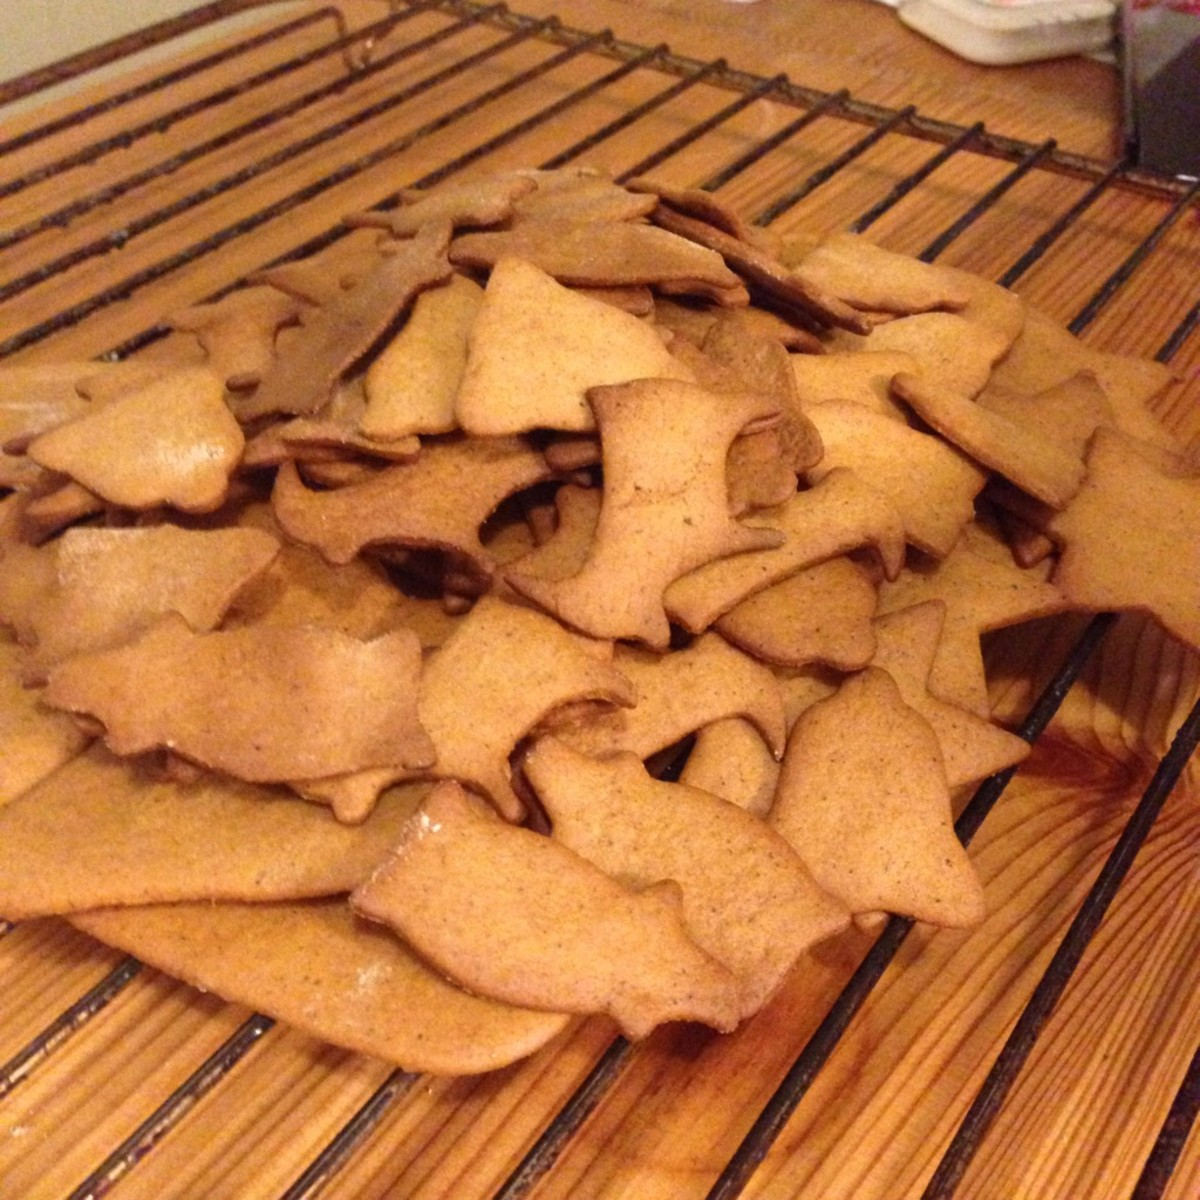 A batch of freshly baked gingerbread cookies.